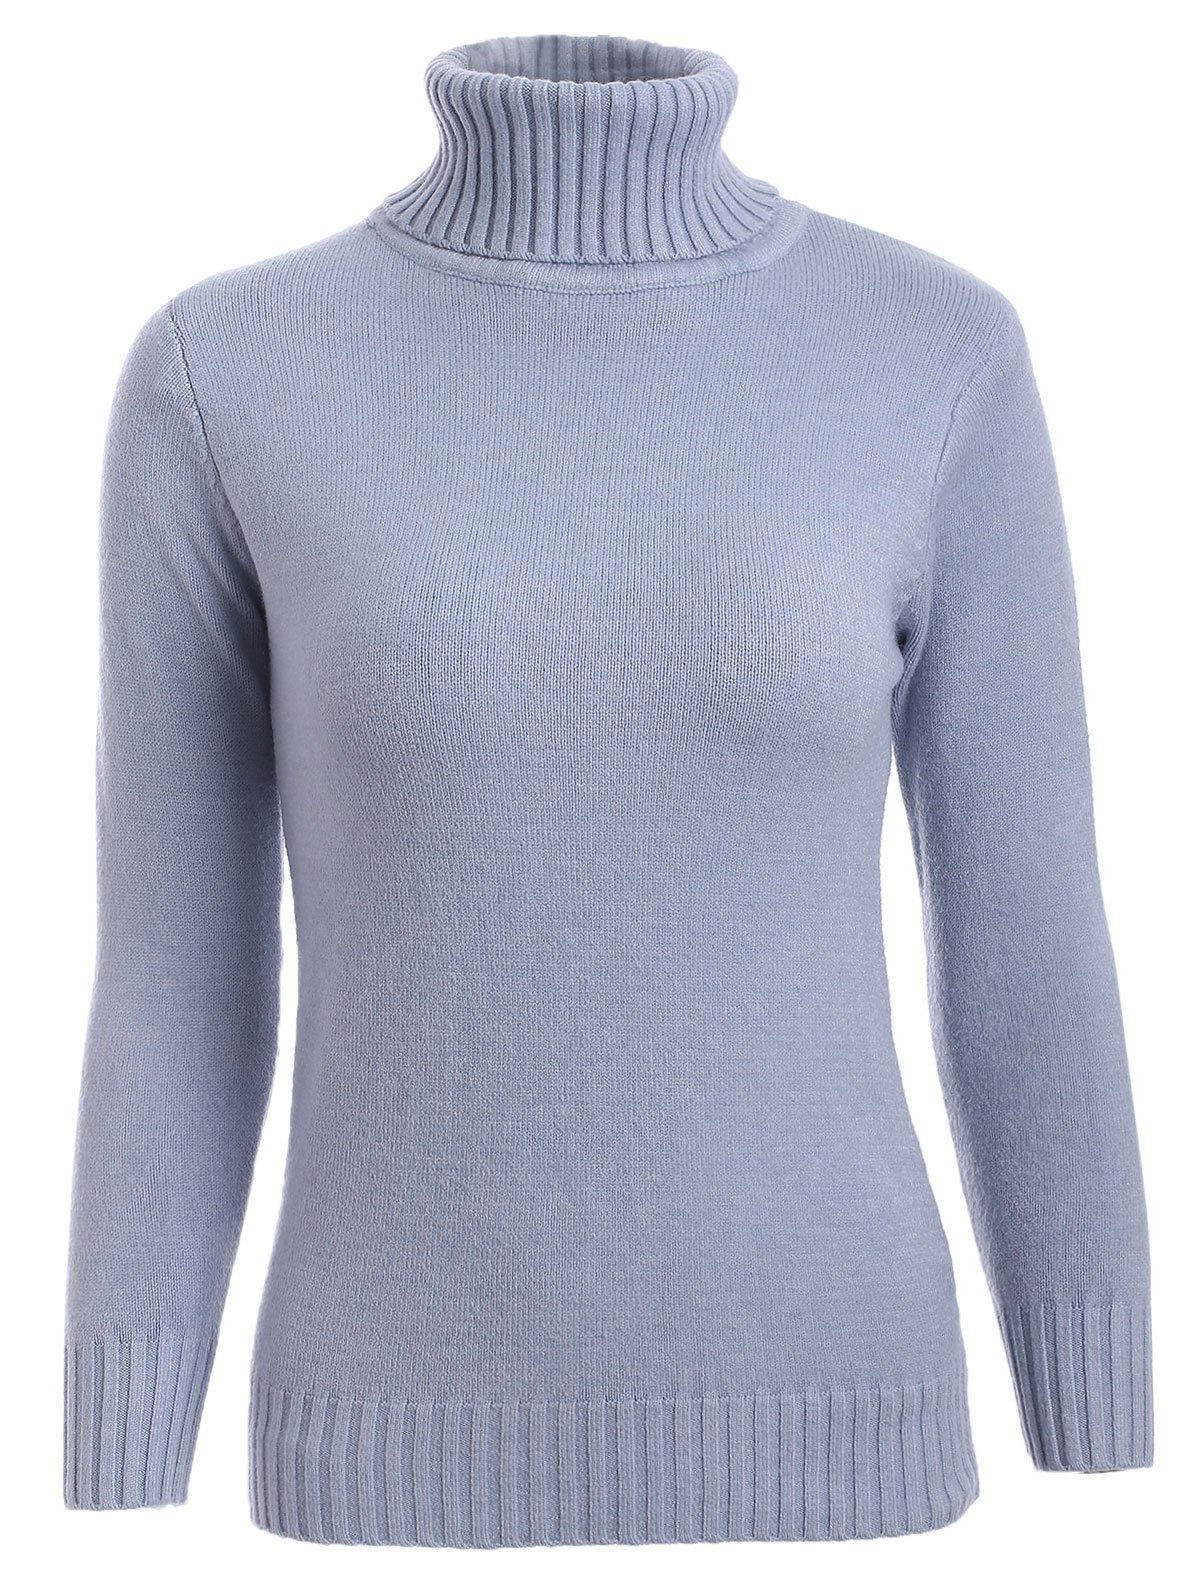 Turtleneck SweaterClothes<br><br><br>Size: ONE SIZE<br>Color: GRAY